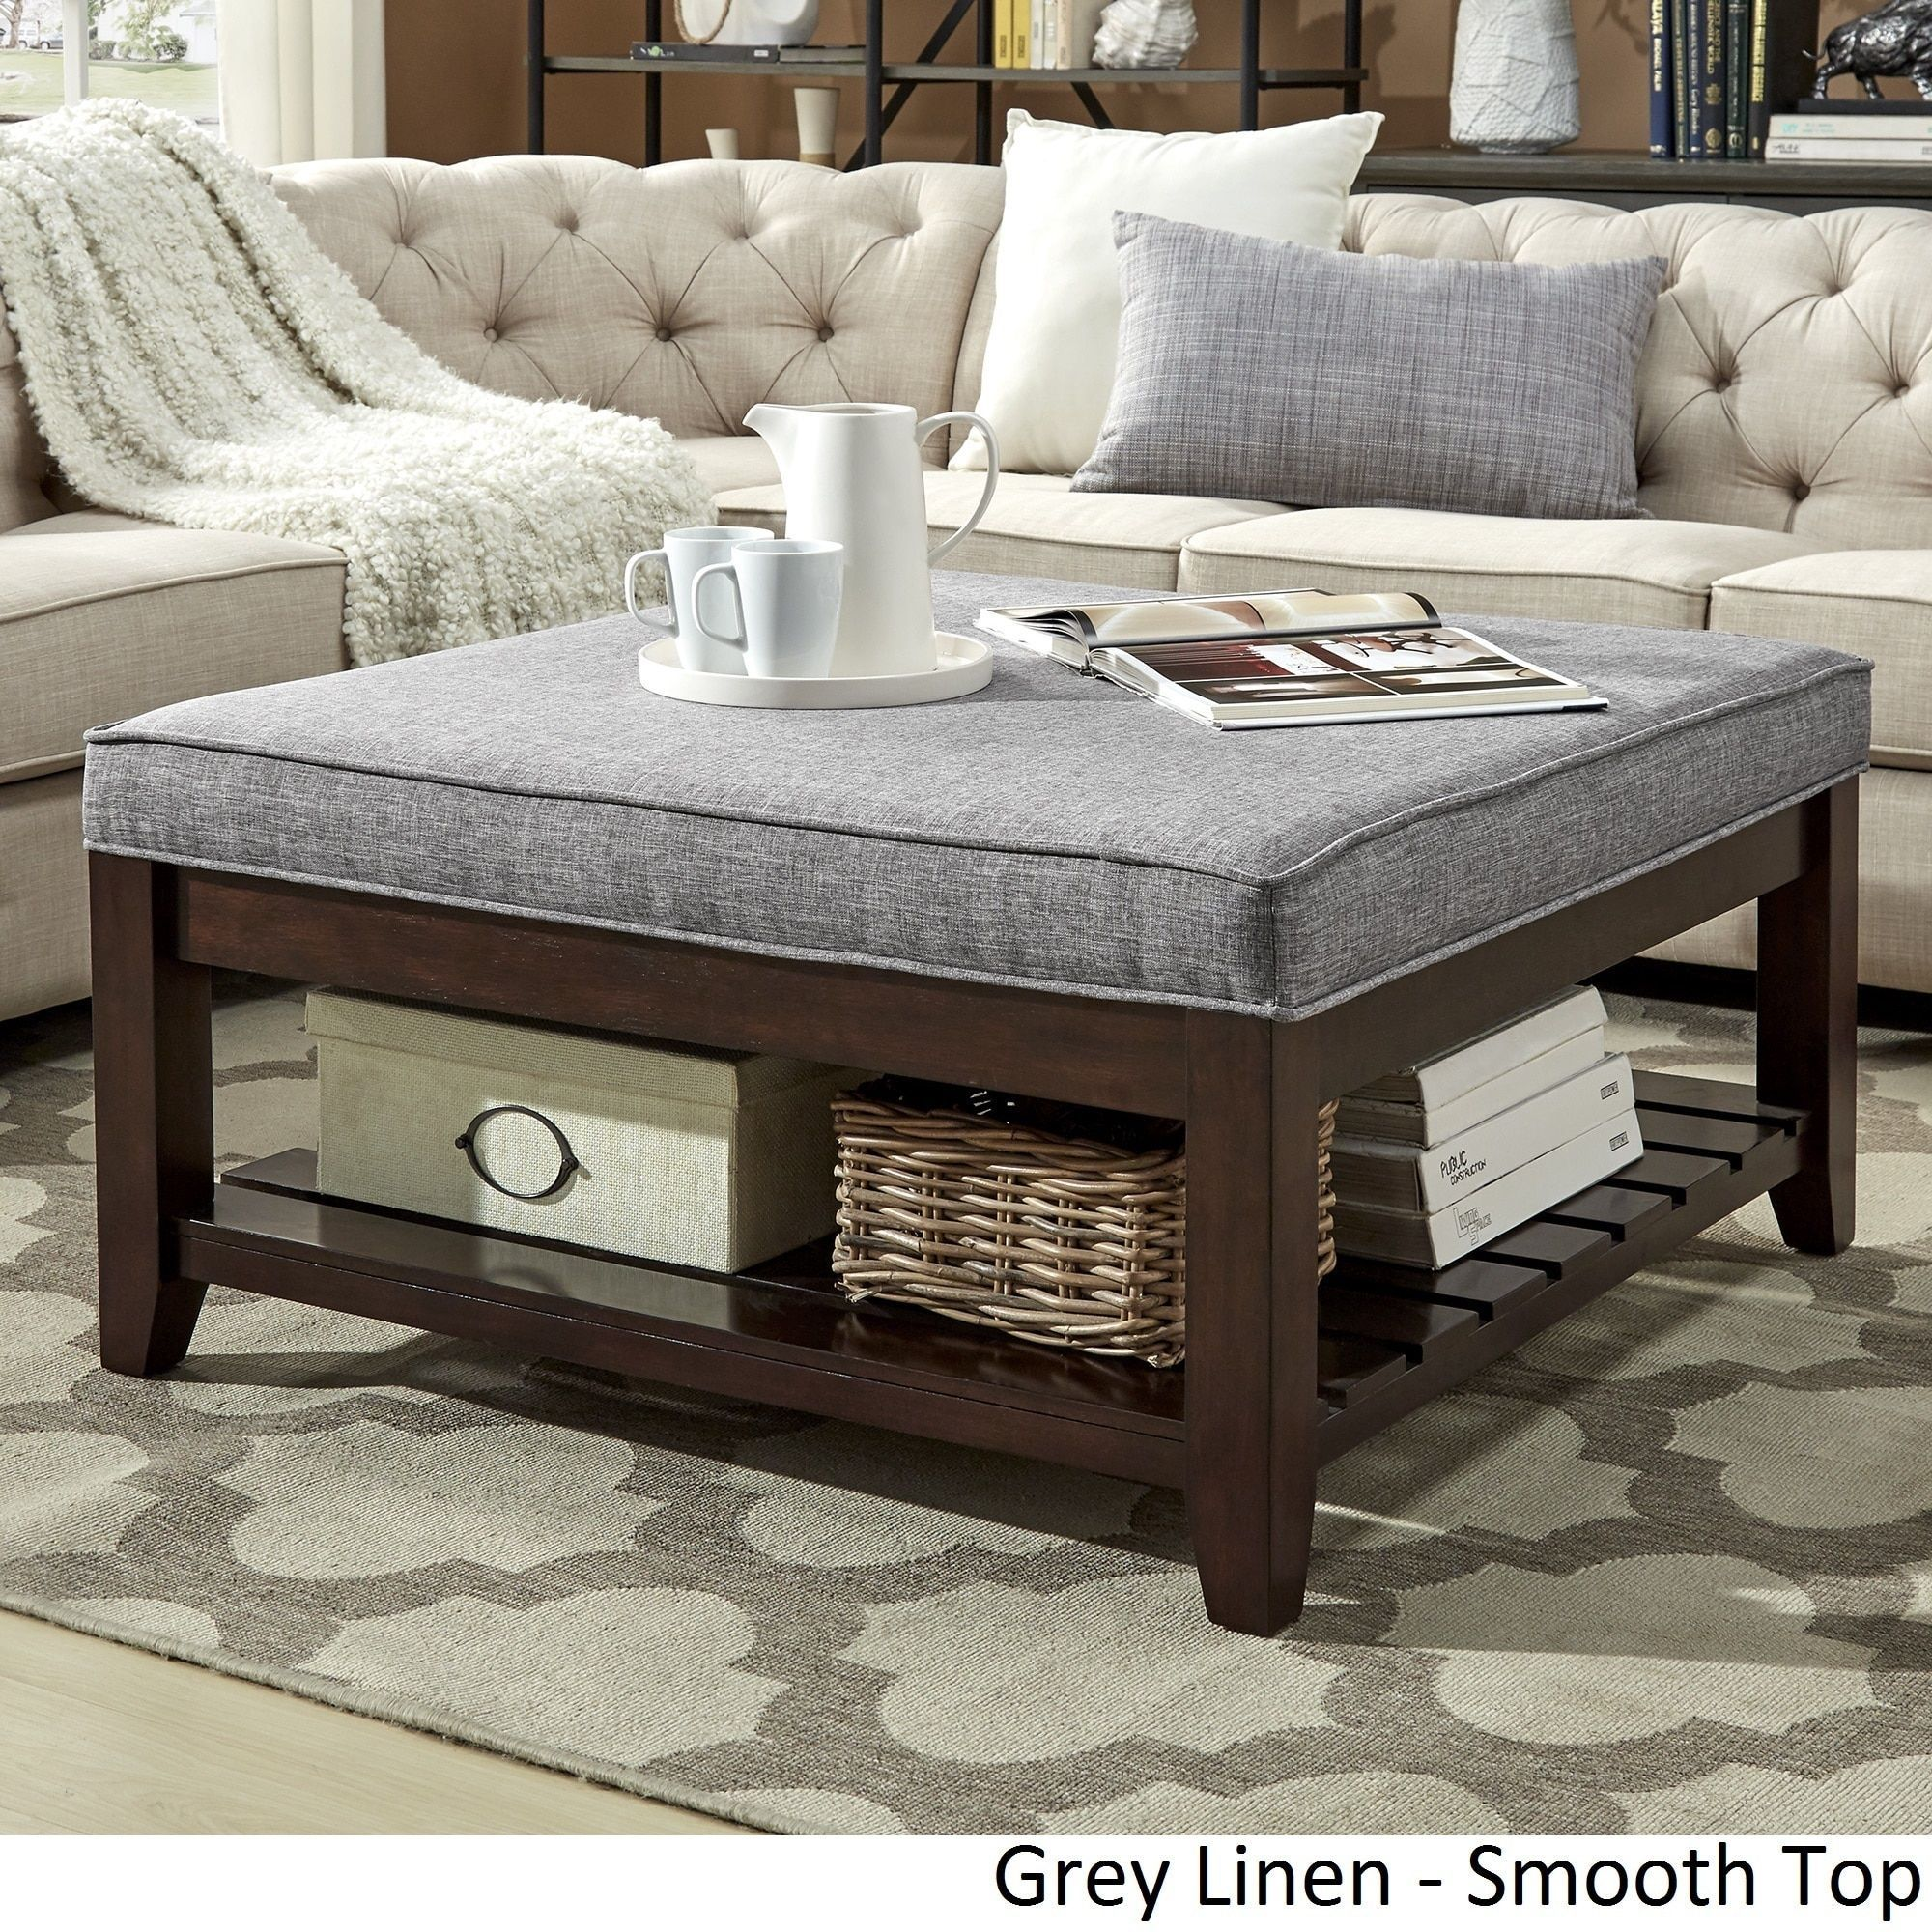 Merihill Coffee Table With Ottoman: Lennon Espresso Planked Storage Ottoman Coffee Table By